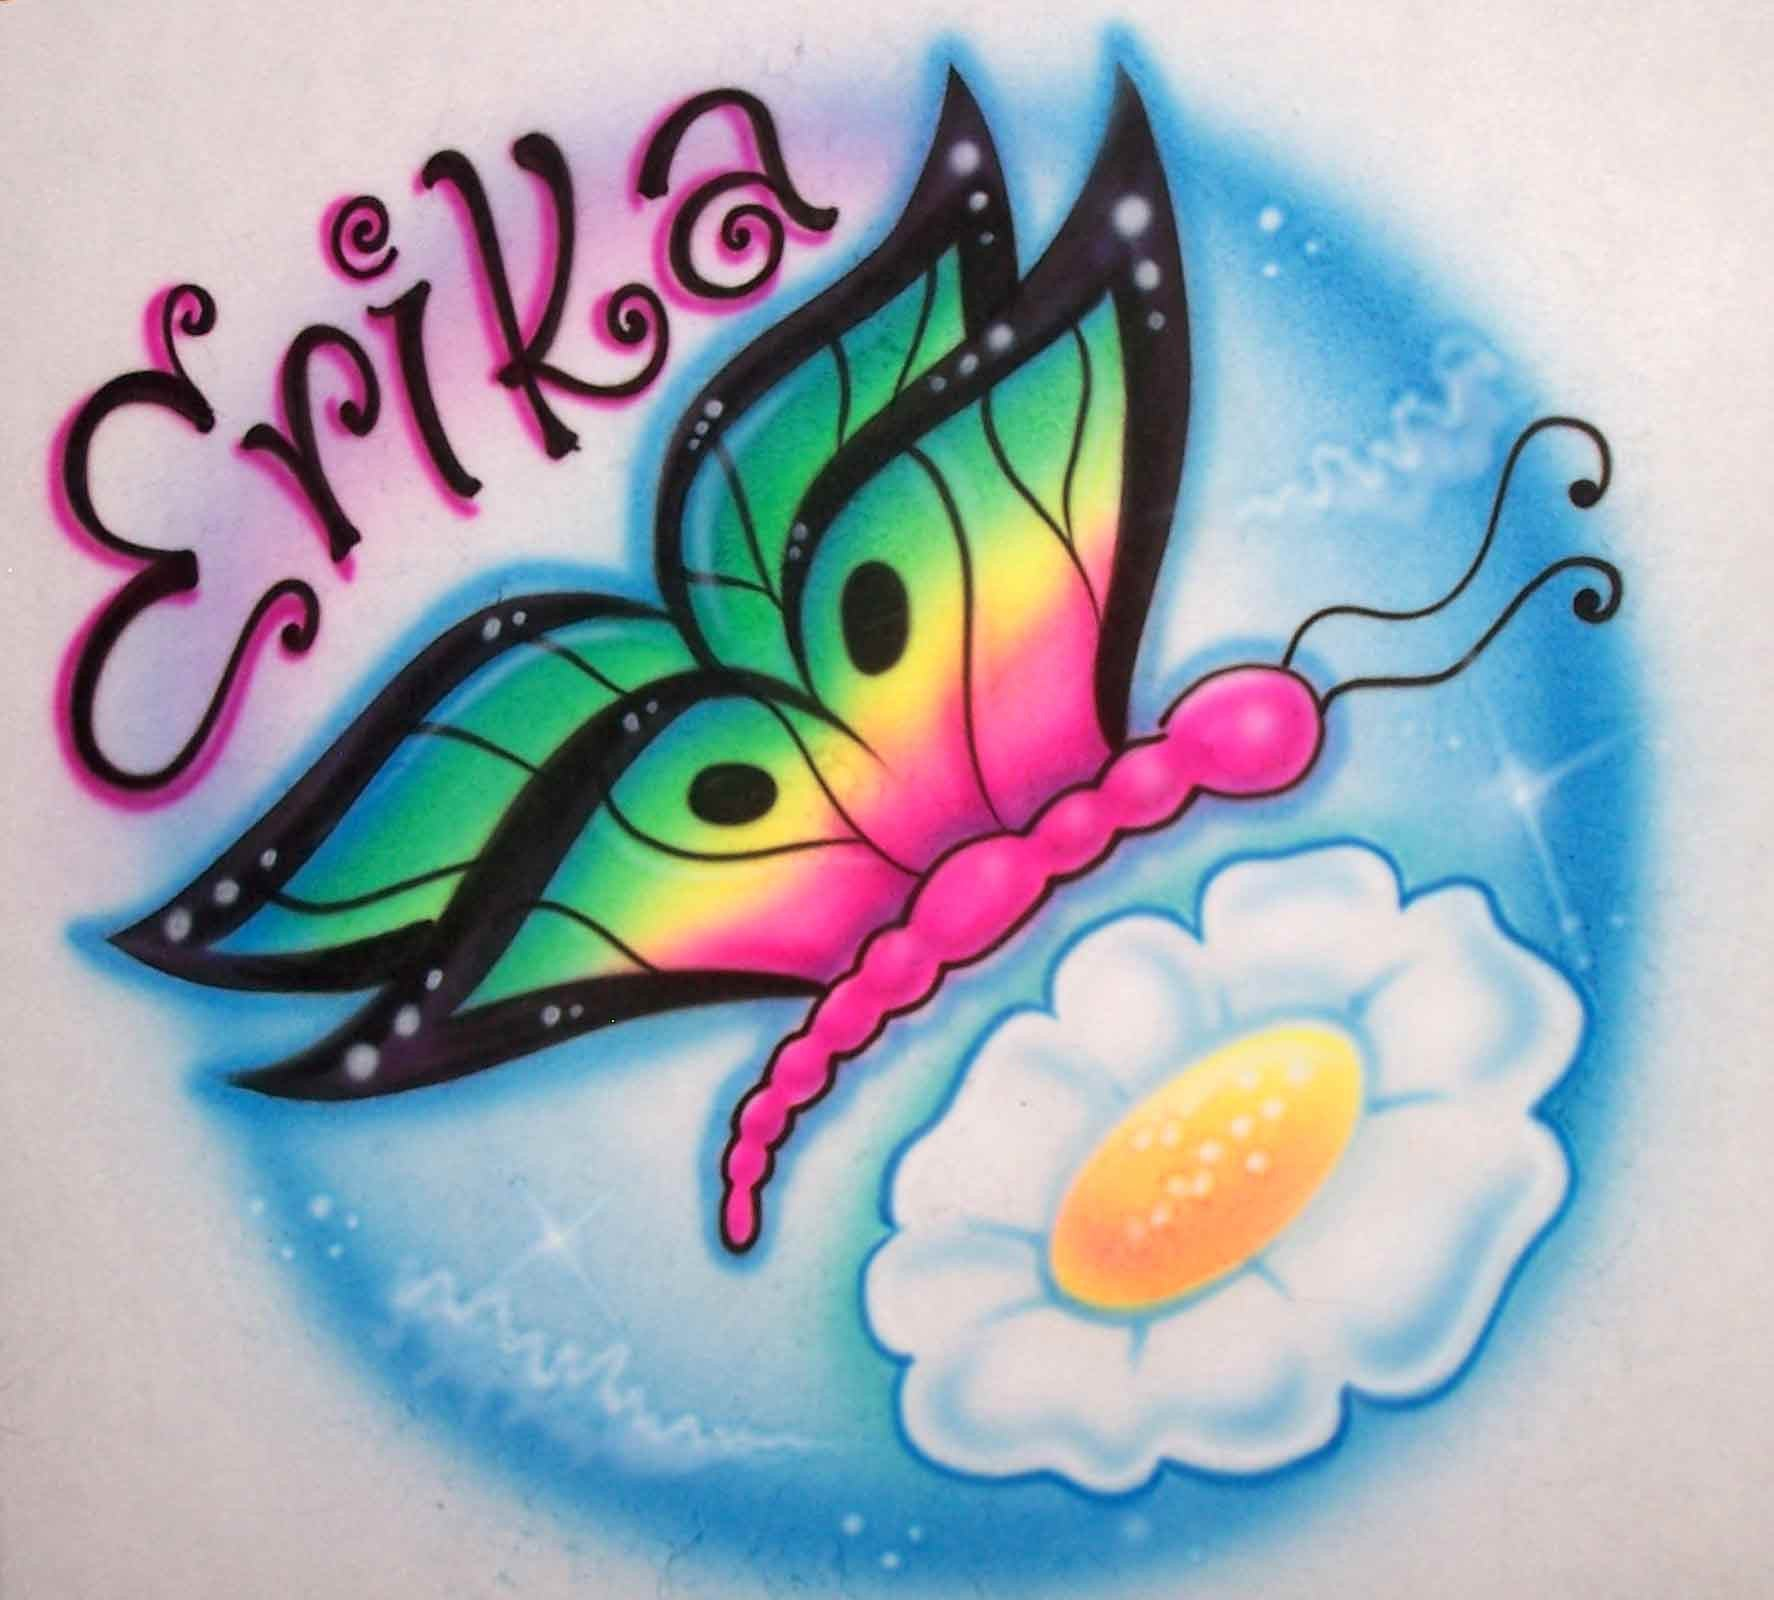 Butterfly & Flower with Any Name of Choice for T's, Sweatshirts, and More